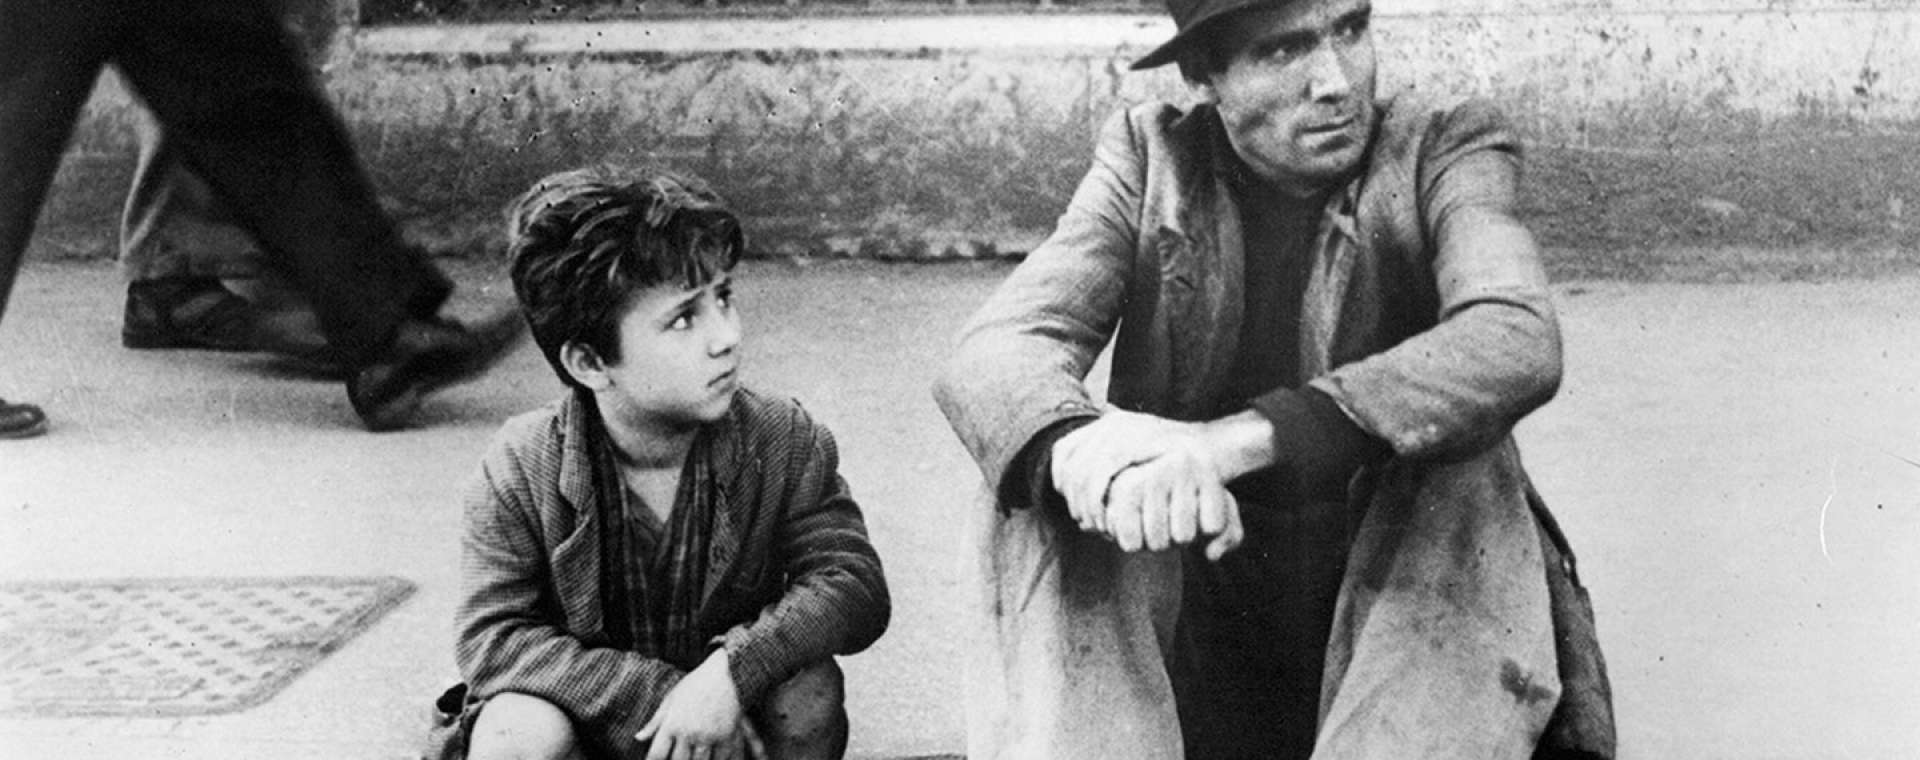 An Introduction to Italian Neorealism